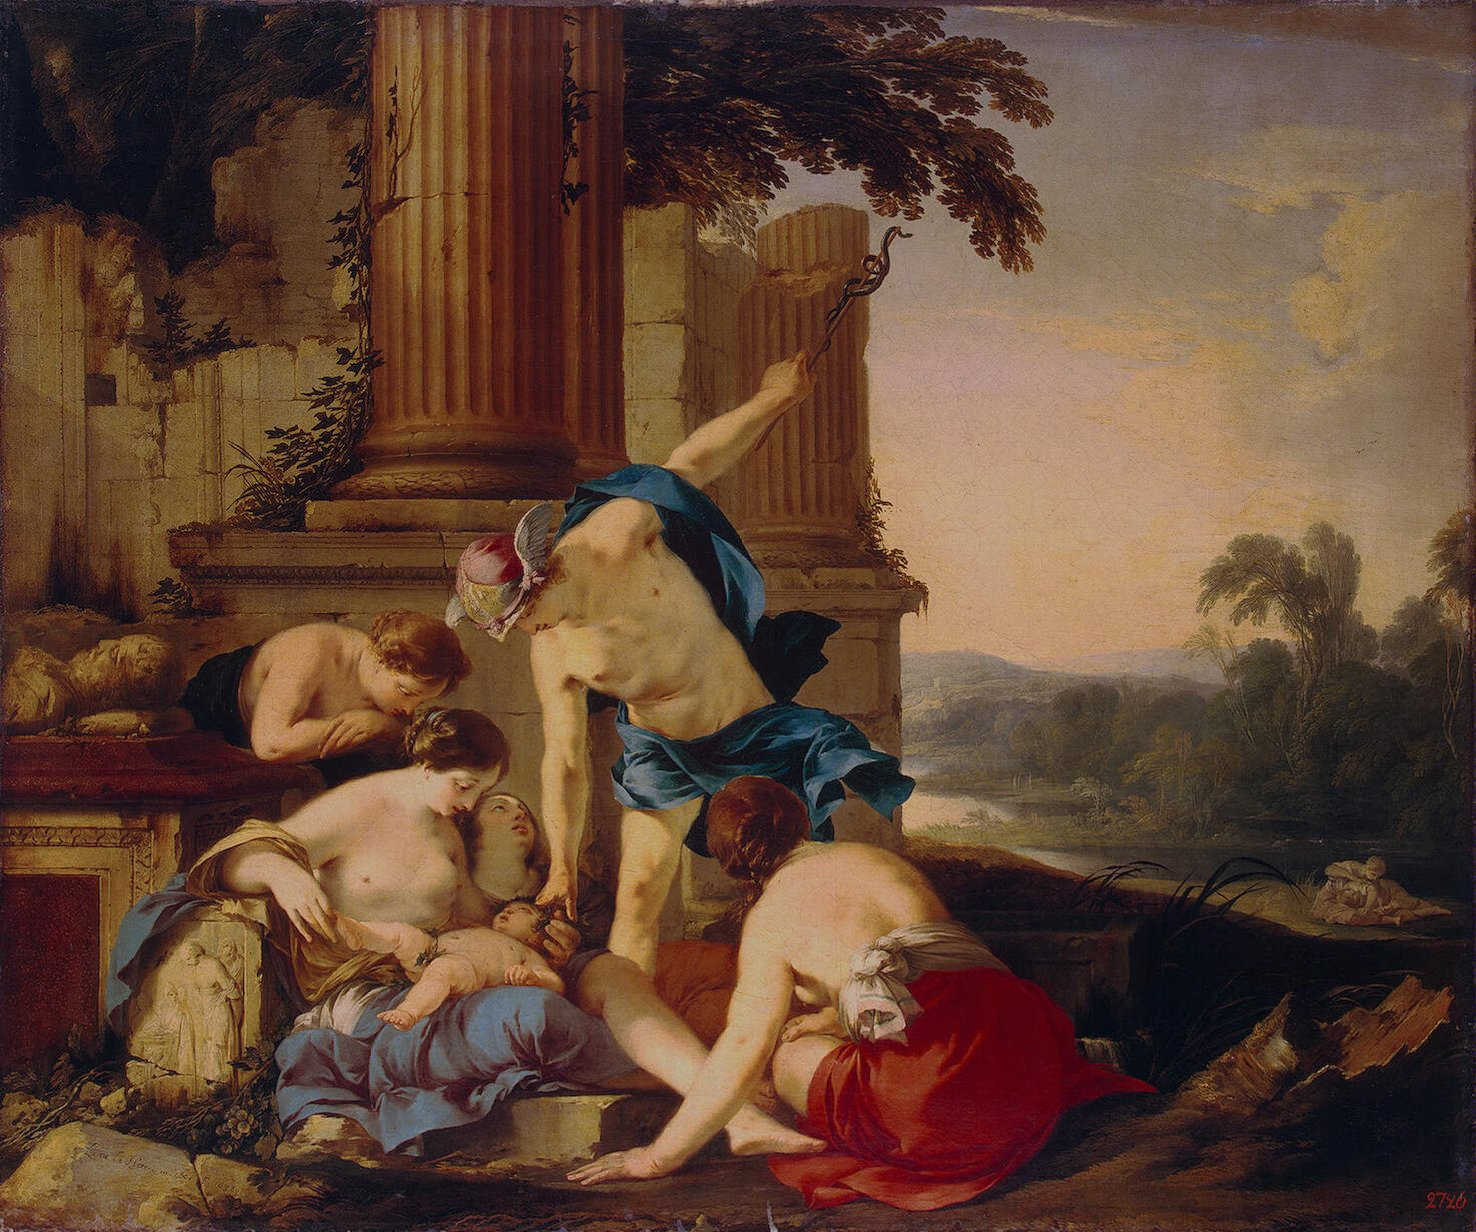 Mercury Takes Bacchus to be Brought up by Nymphs